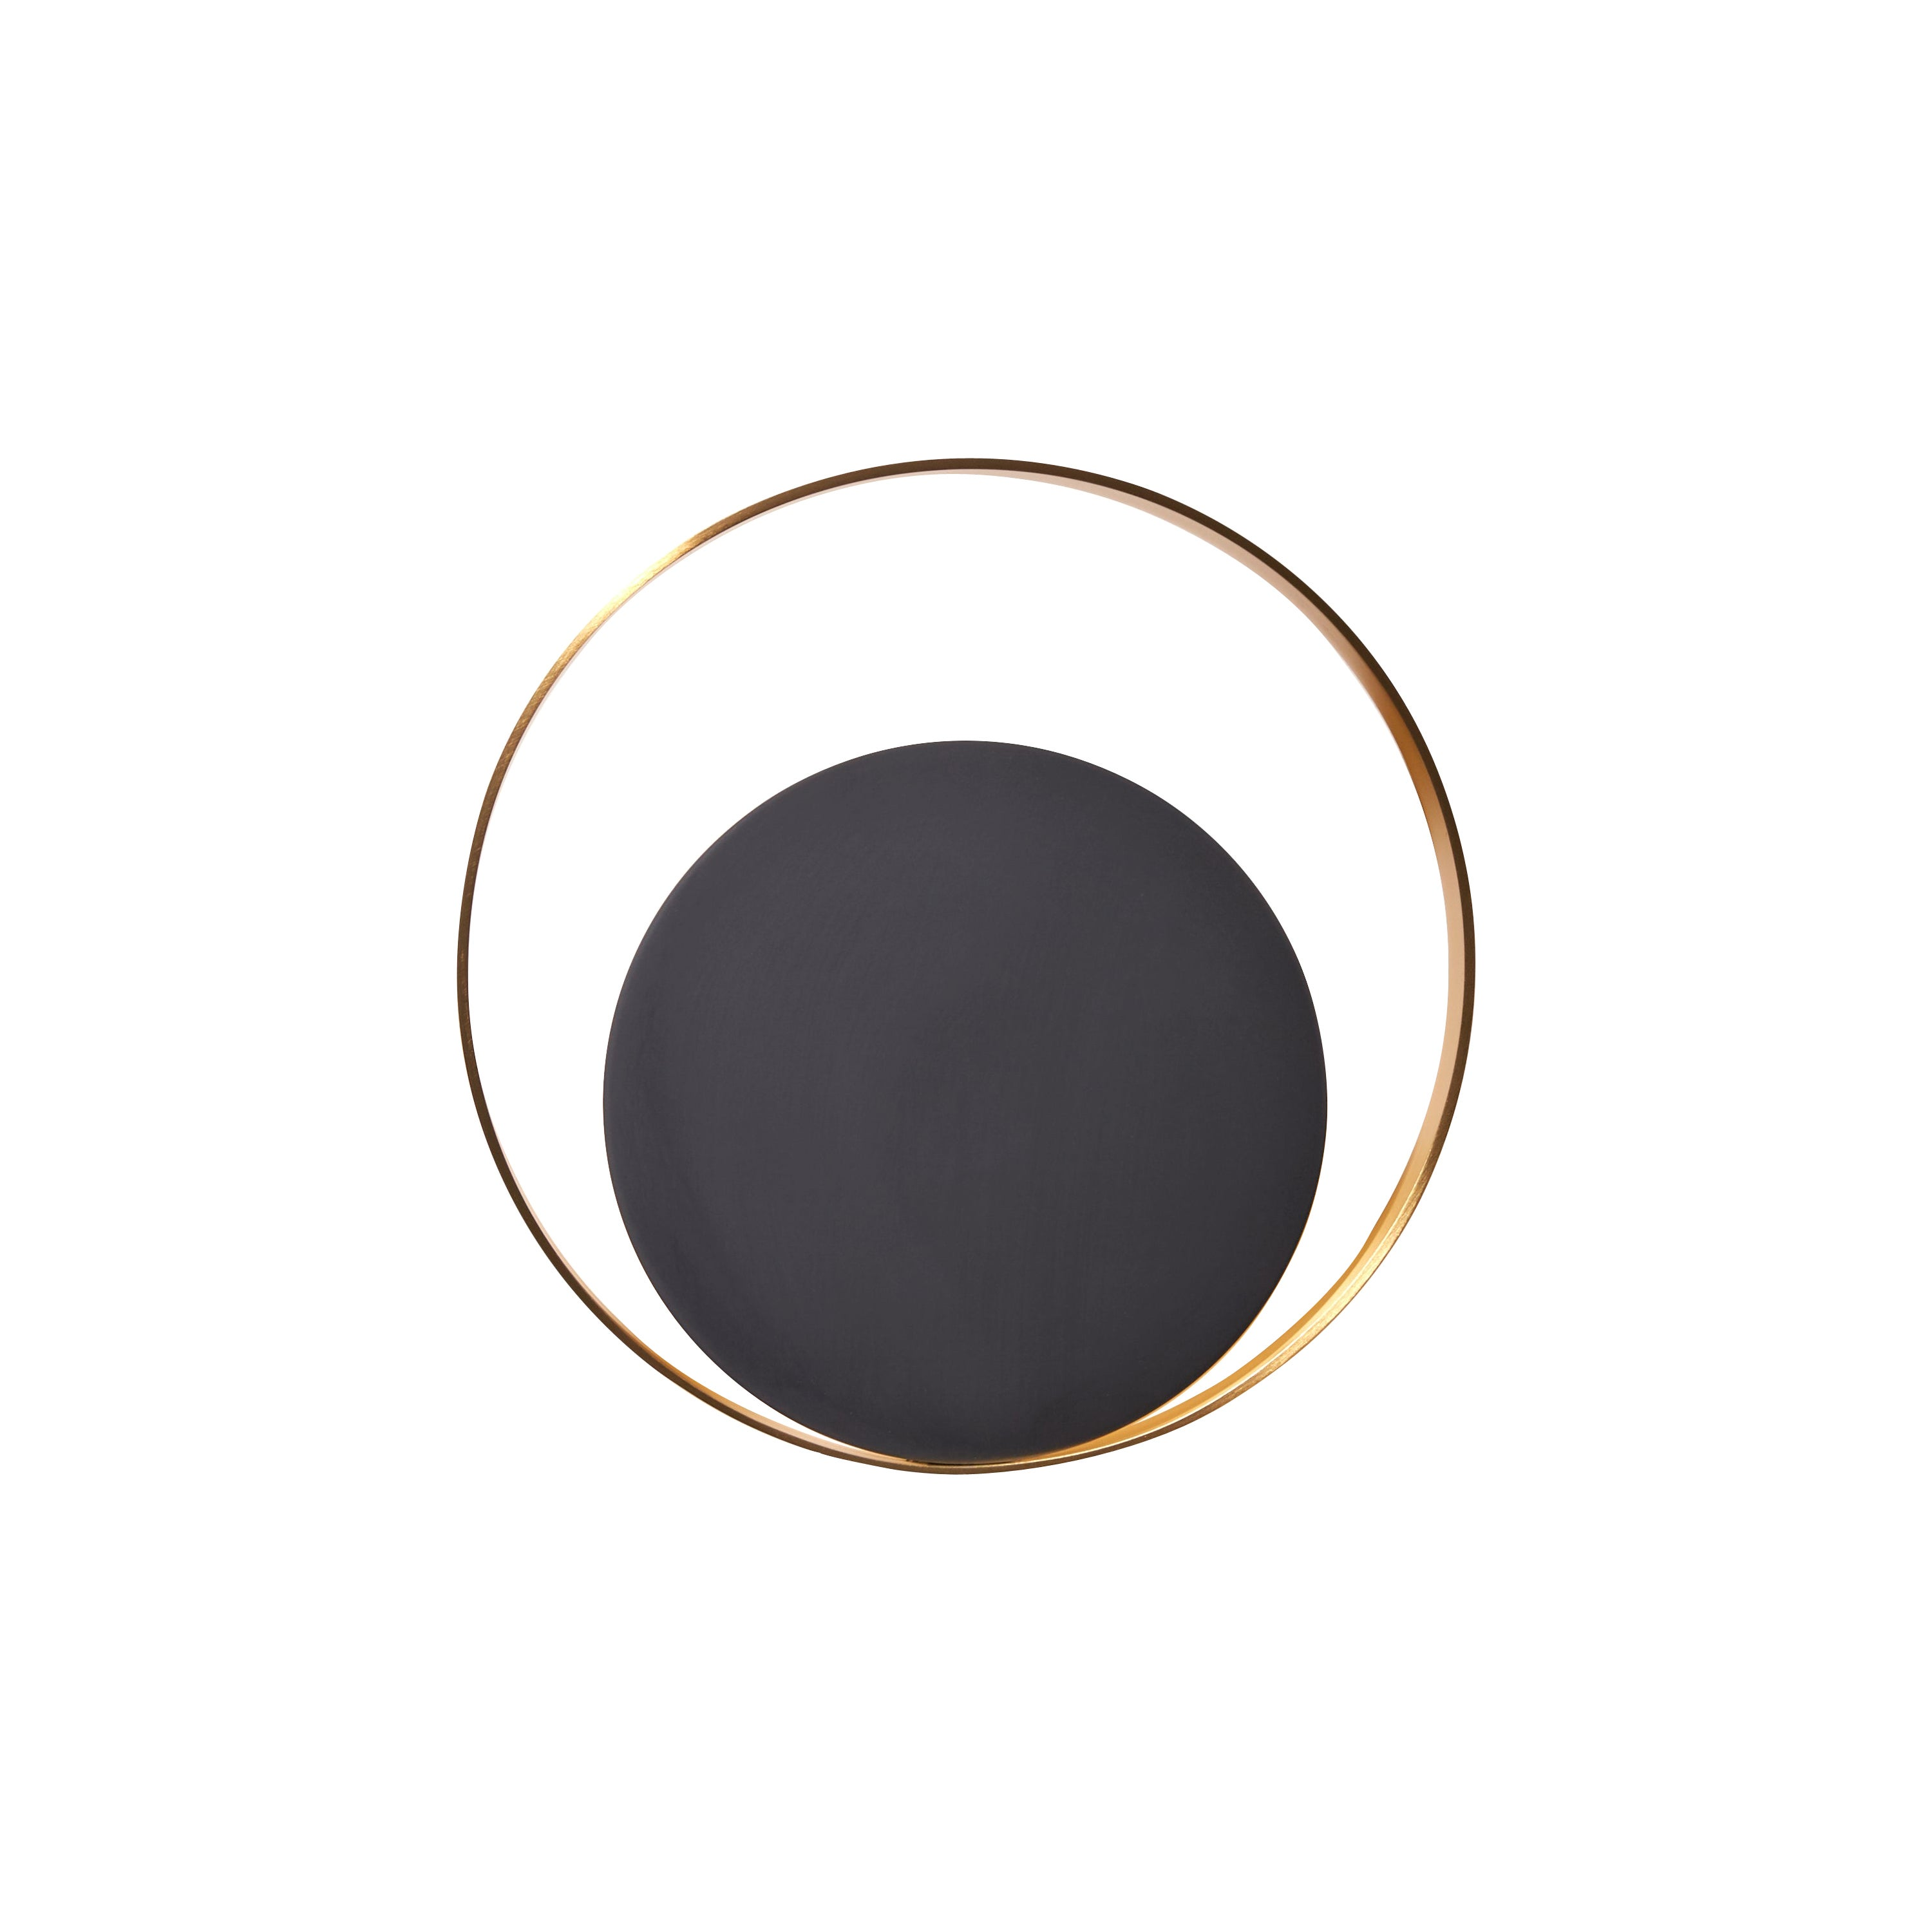 VeniceM Small Circle Wall Light in Burnished Brass by Massimo Tonetto